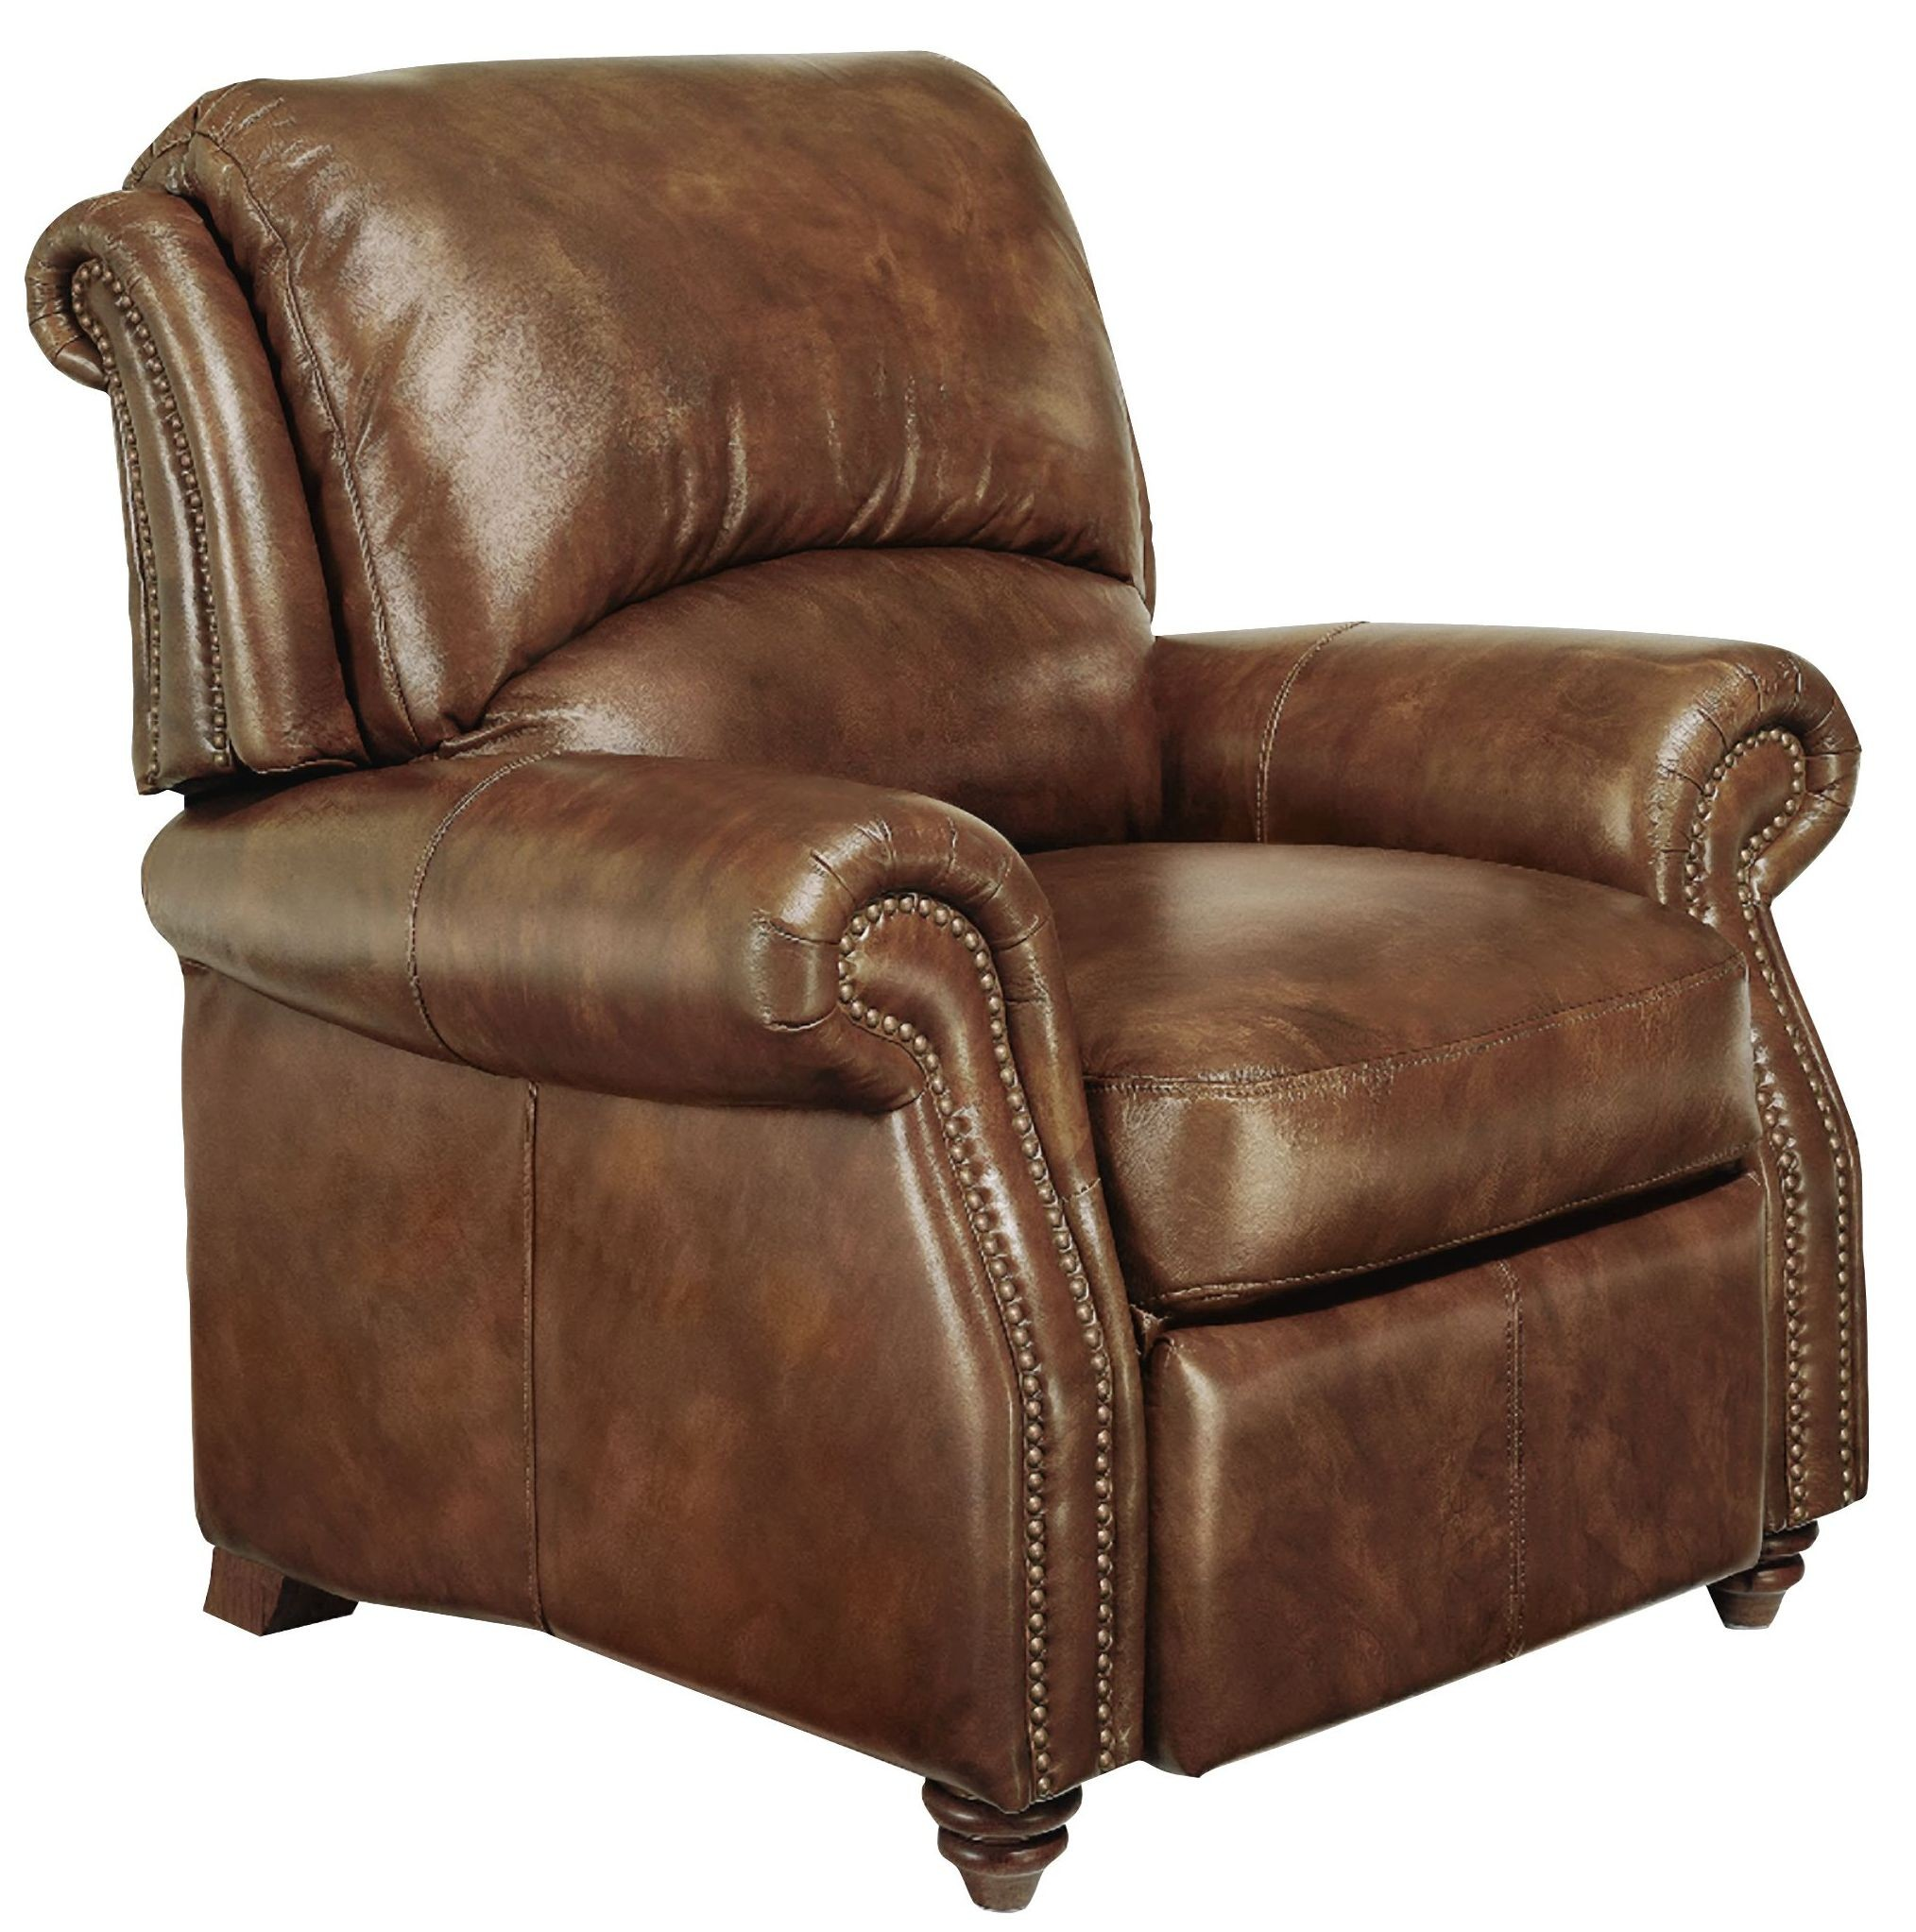 press back chair banquet cover presidential duplin pecan leather italia